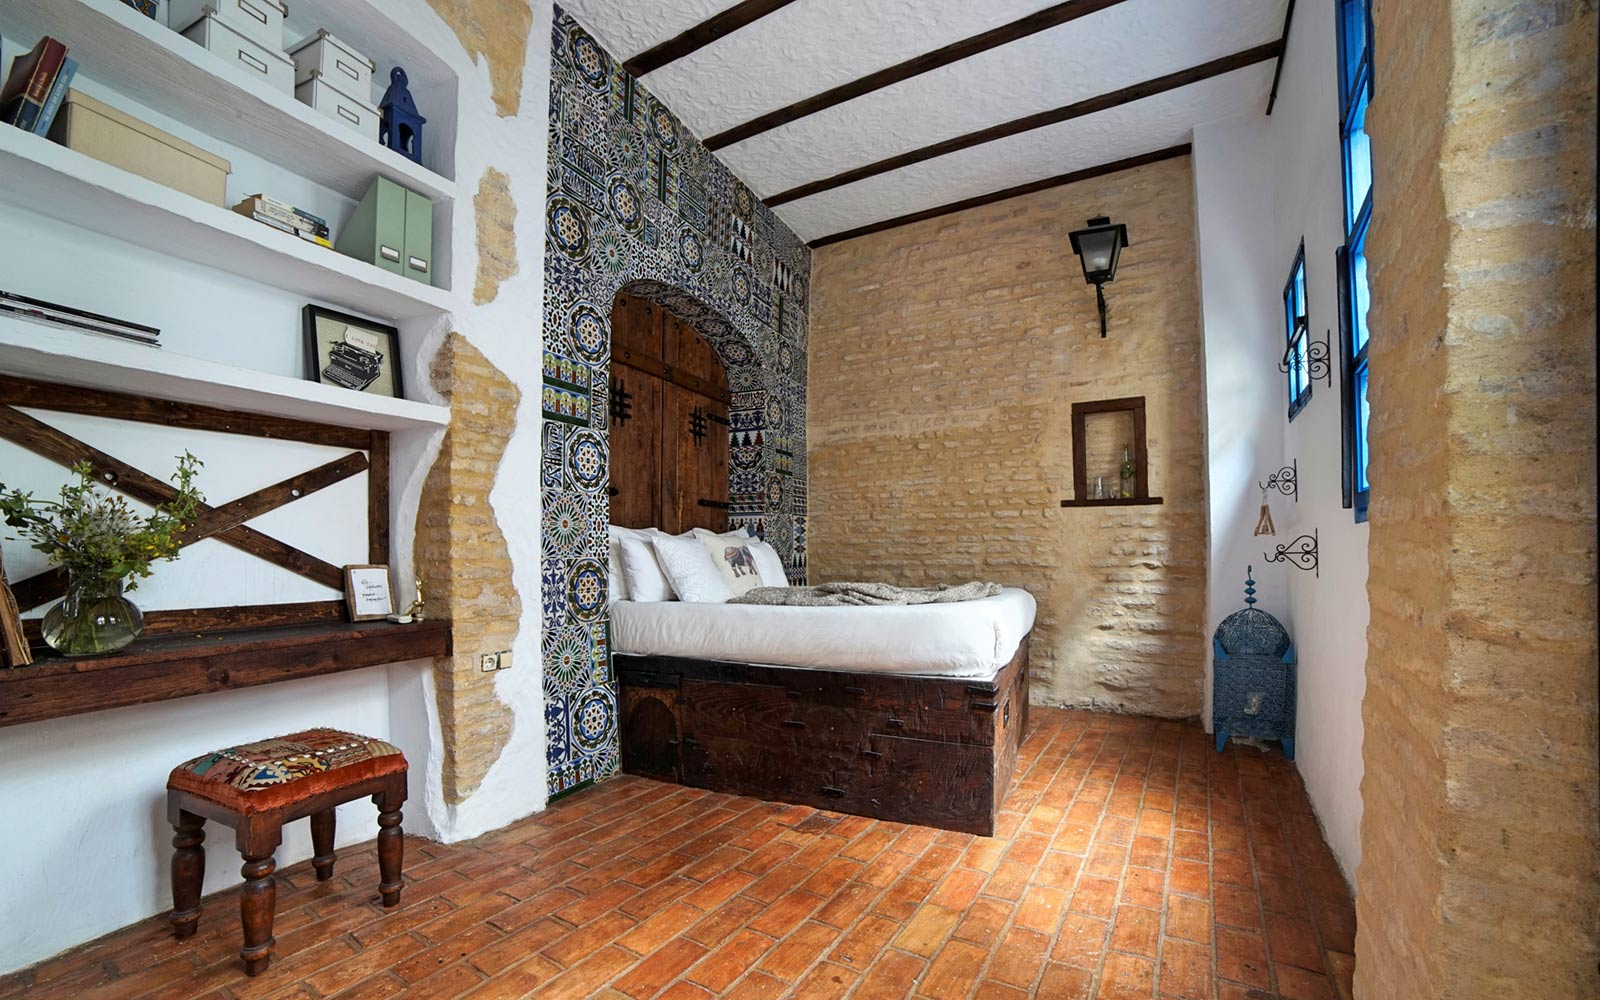 Restored 500-year-old House in Seville, Spain